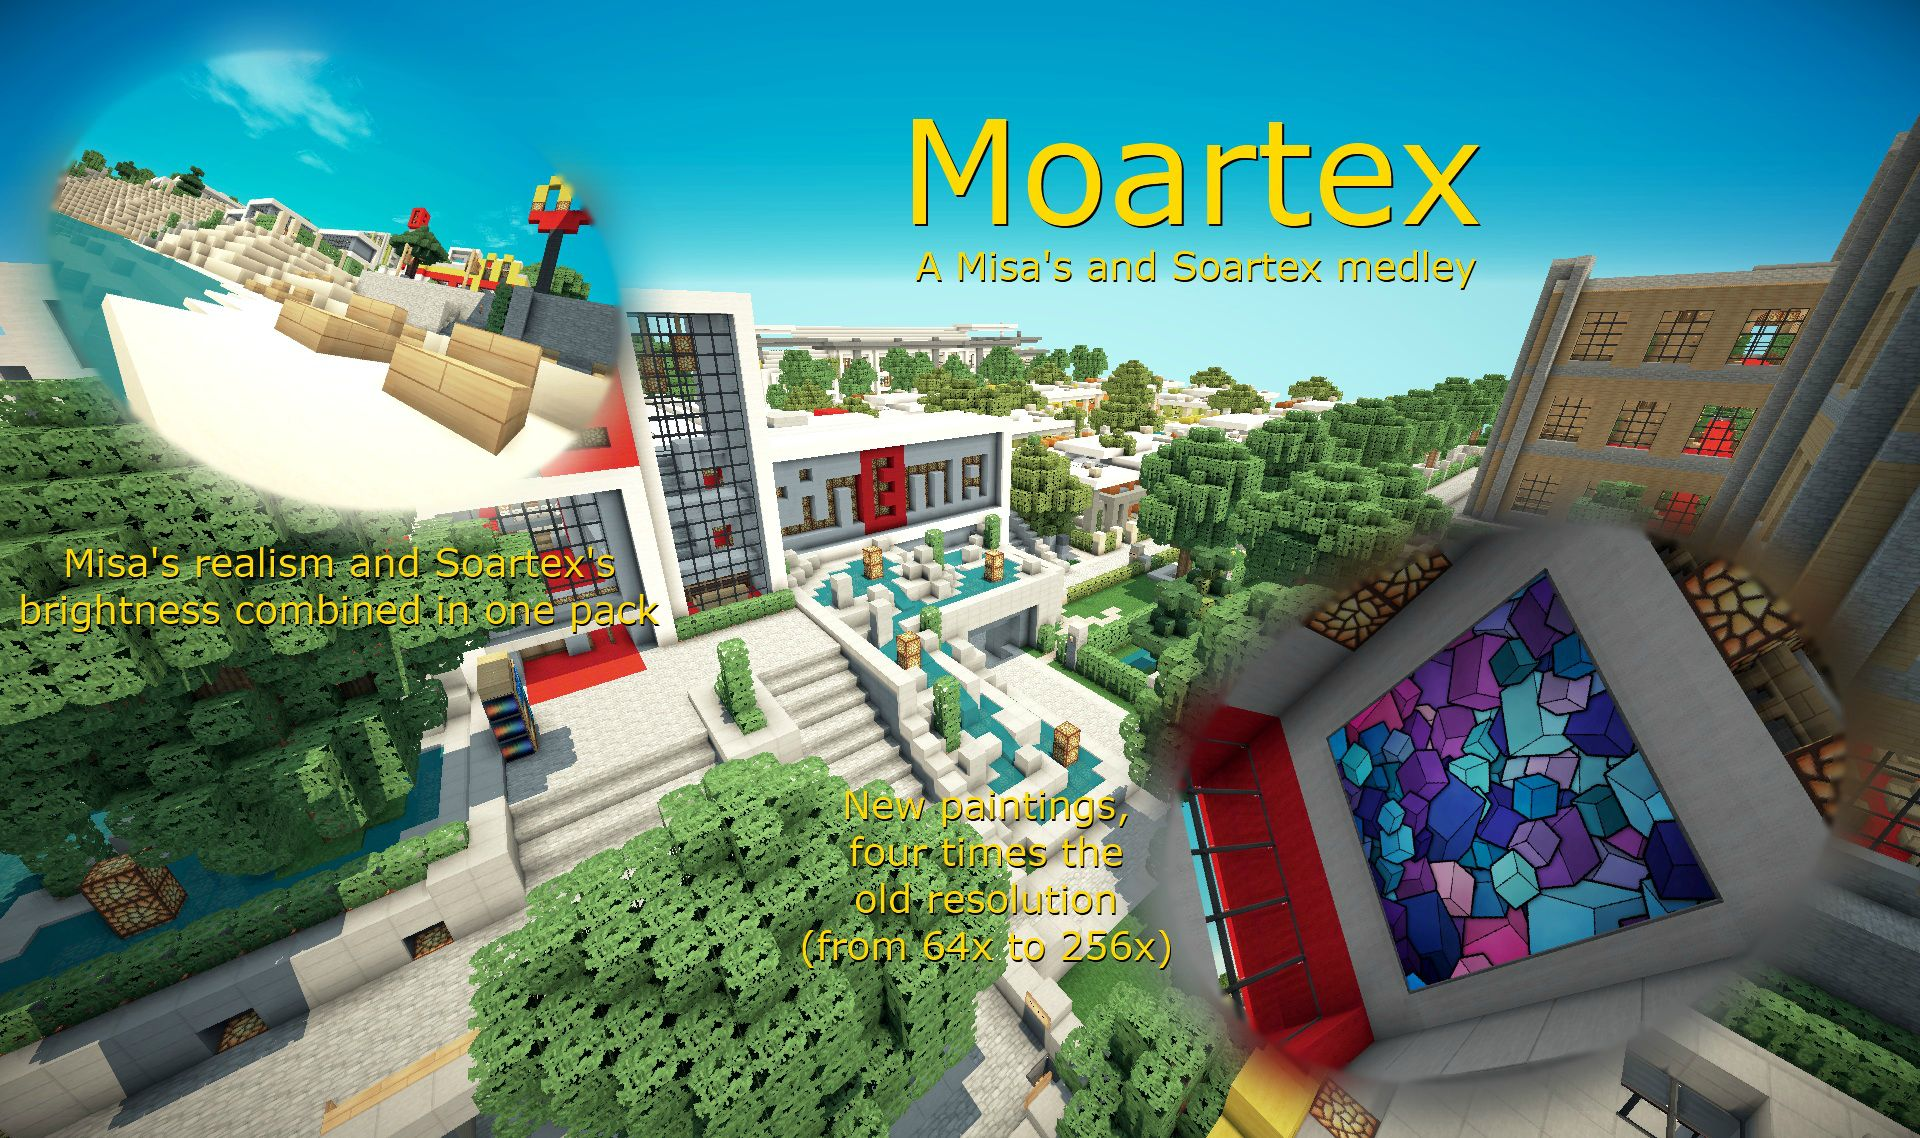 http://minecraft-forum.net/wp-content/uploads/2013/01/6ffe8__Moartex-texture-pack.jpg